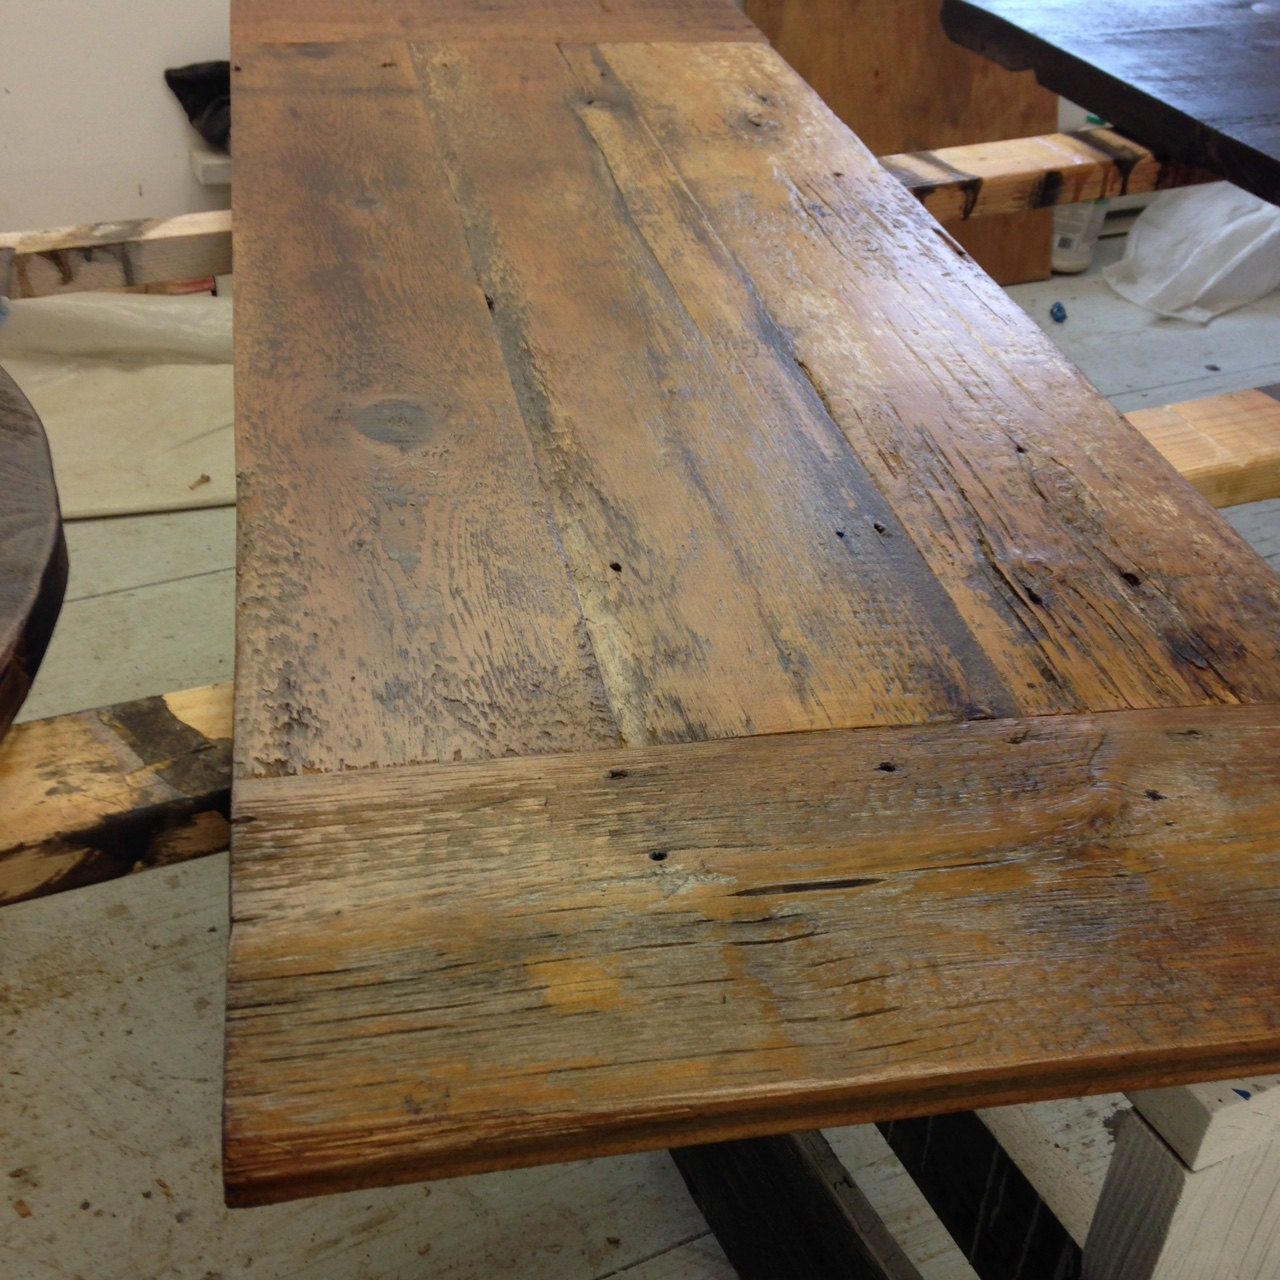 Reclaimed wood desk top, Legs not included for this listing - Reclaimed Wood Desk Etsy